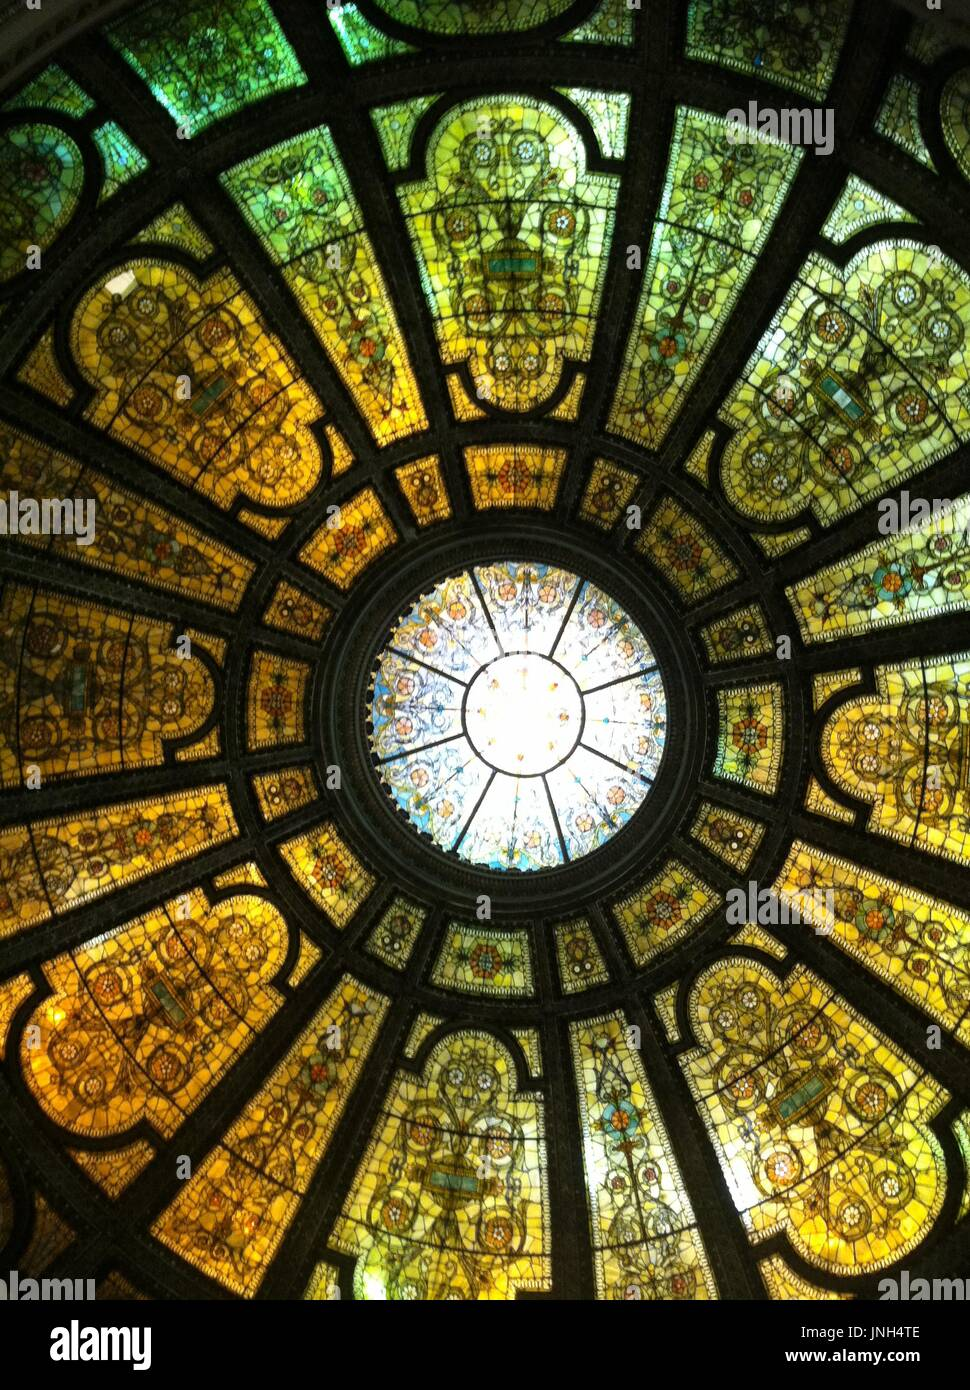 Stained Glass Skylight Stock Photos & Stained Glass